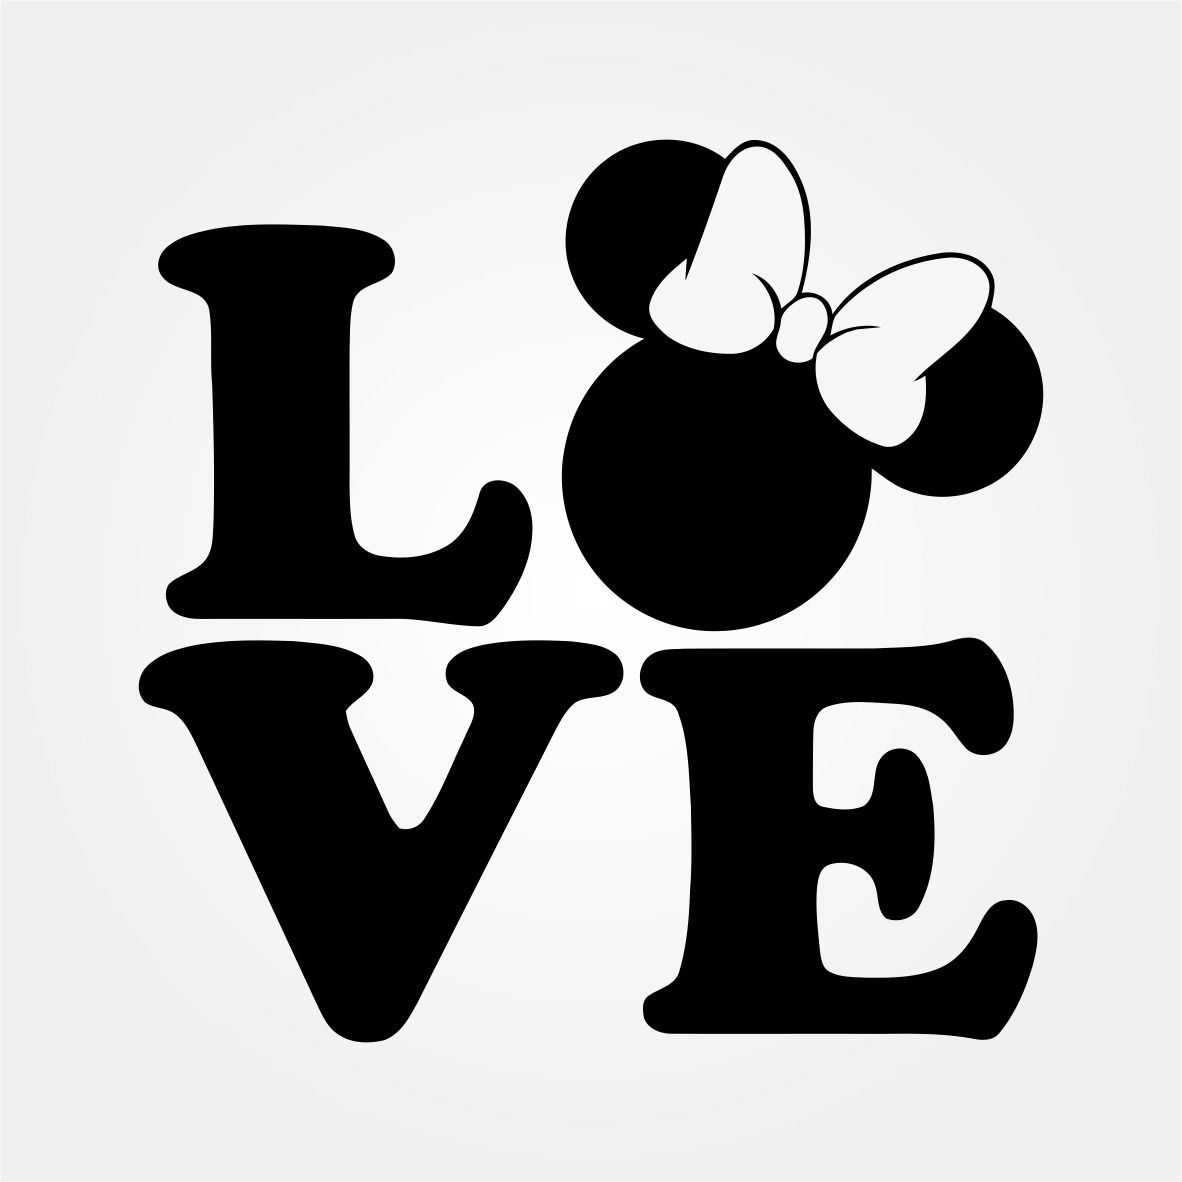 Disney SVG: Minnie Mouse Love Cut File | SVGbomb.com